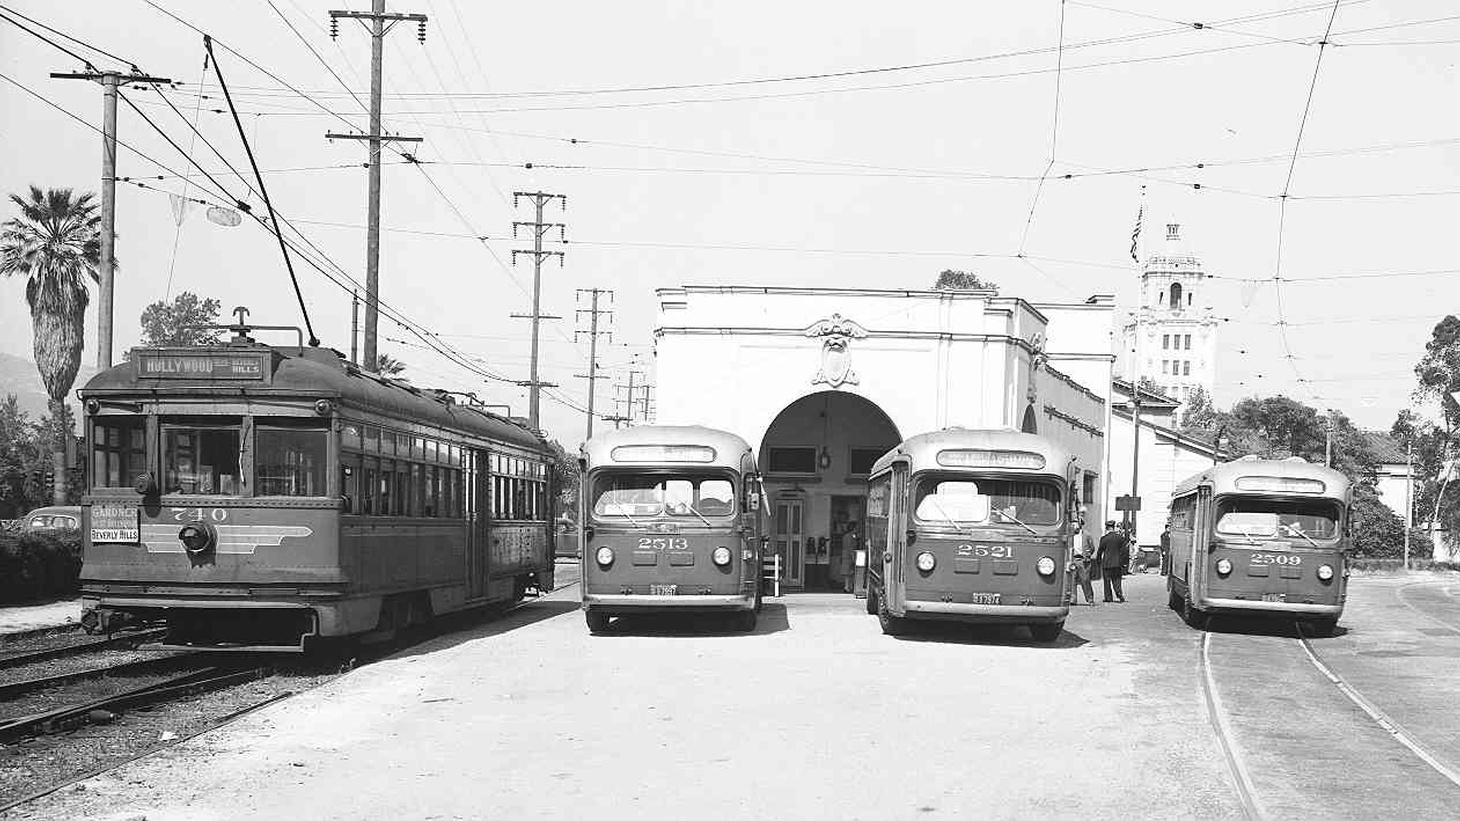 Pacific Electric Railway streetcar no. 740 beside buses nos. 2513, 2521, and 2509 at Beverly Hills station.